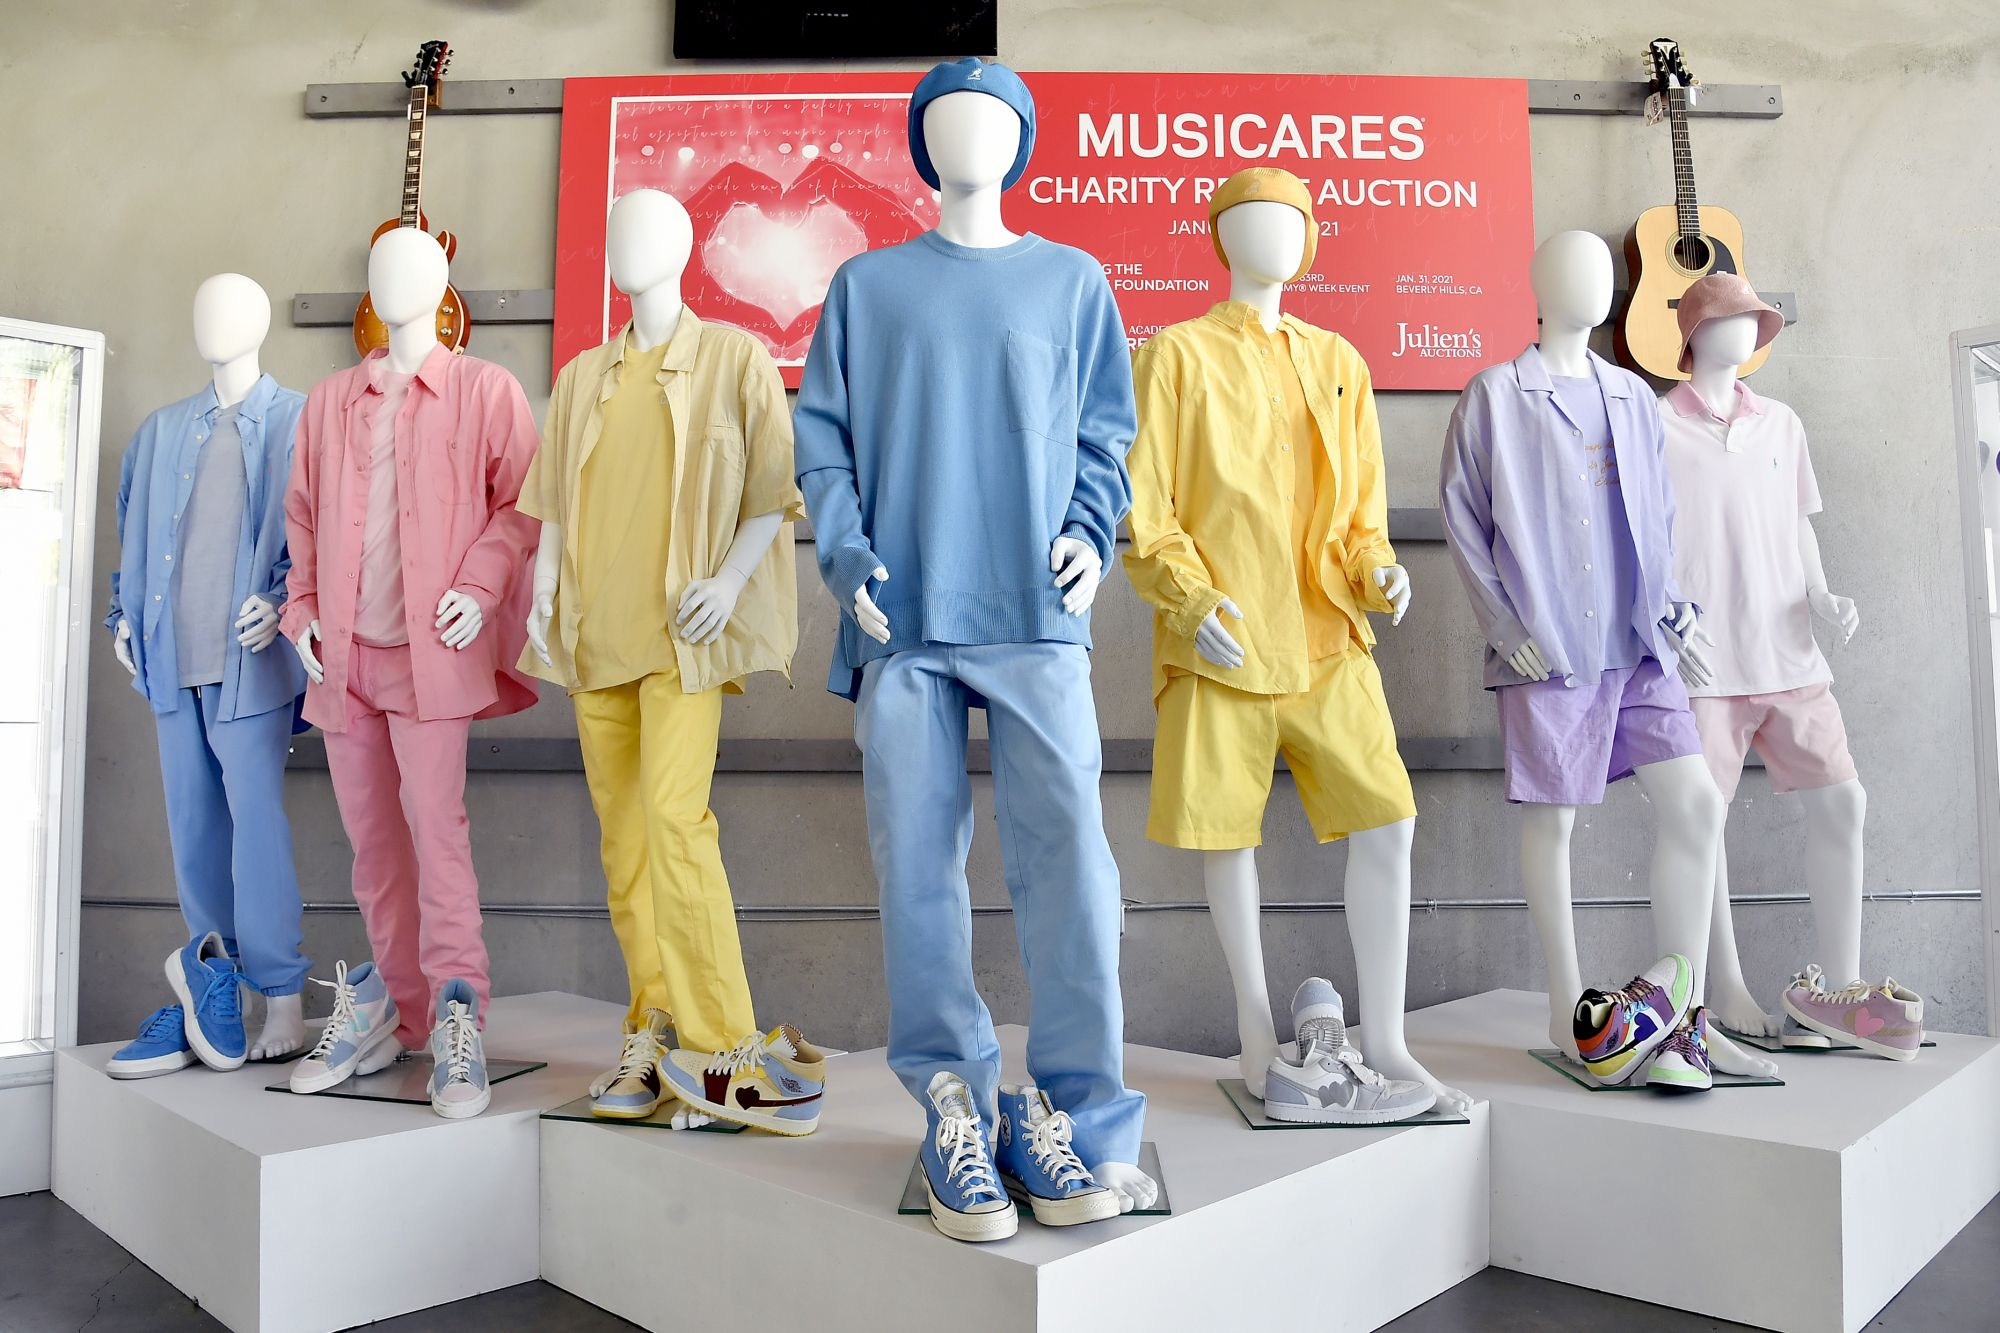 BEVERLY HILLS, CALIFORNIA - JANUARY 26: BTS music video outfits are dispalyed at MusiCares Charity Relief Auction Press Preview at Julien's Auctions on January 26, 2021 in Beverly Hills, California. (Photo by Frazer Harrison/Getty Images)